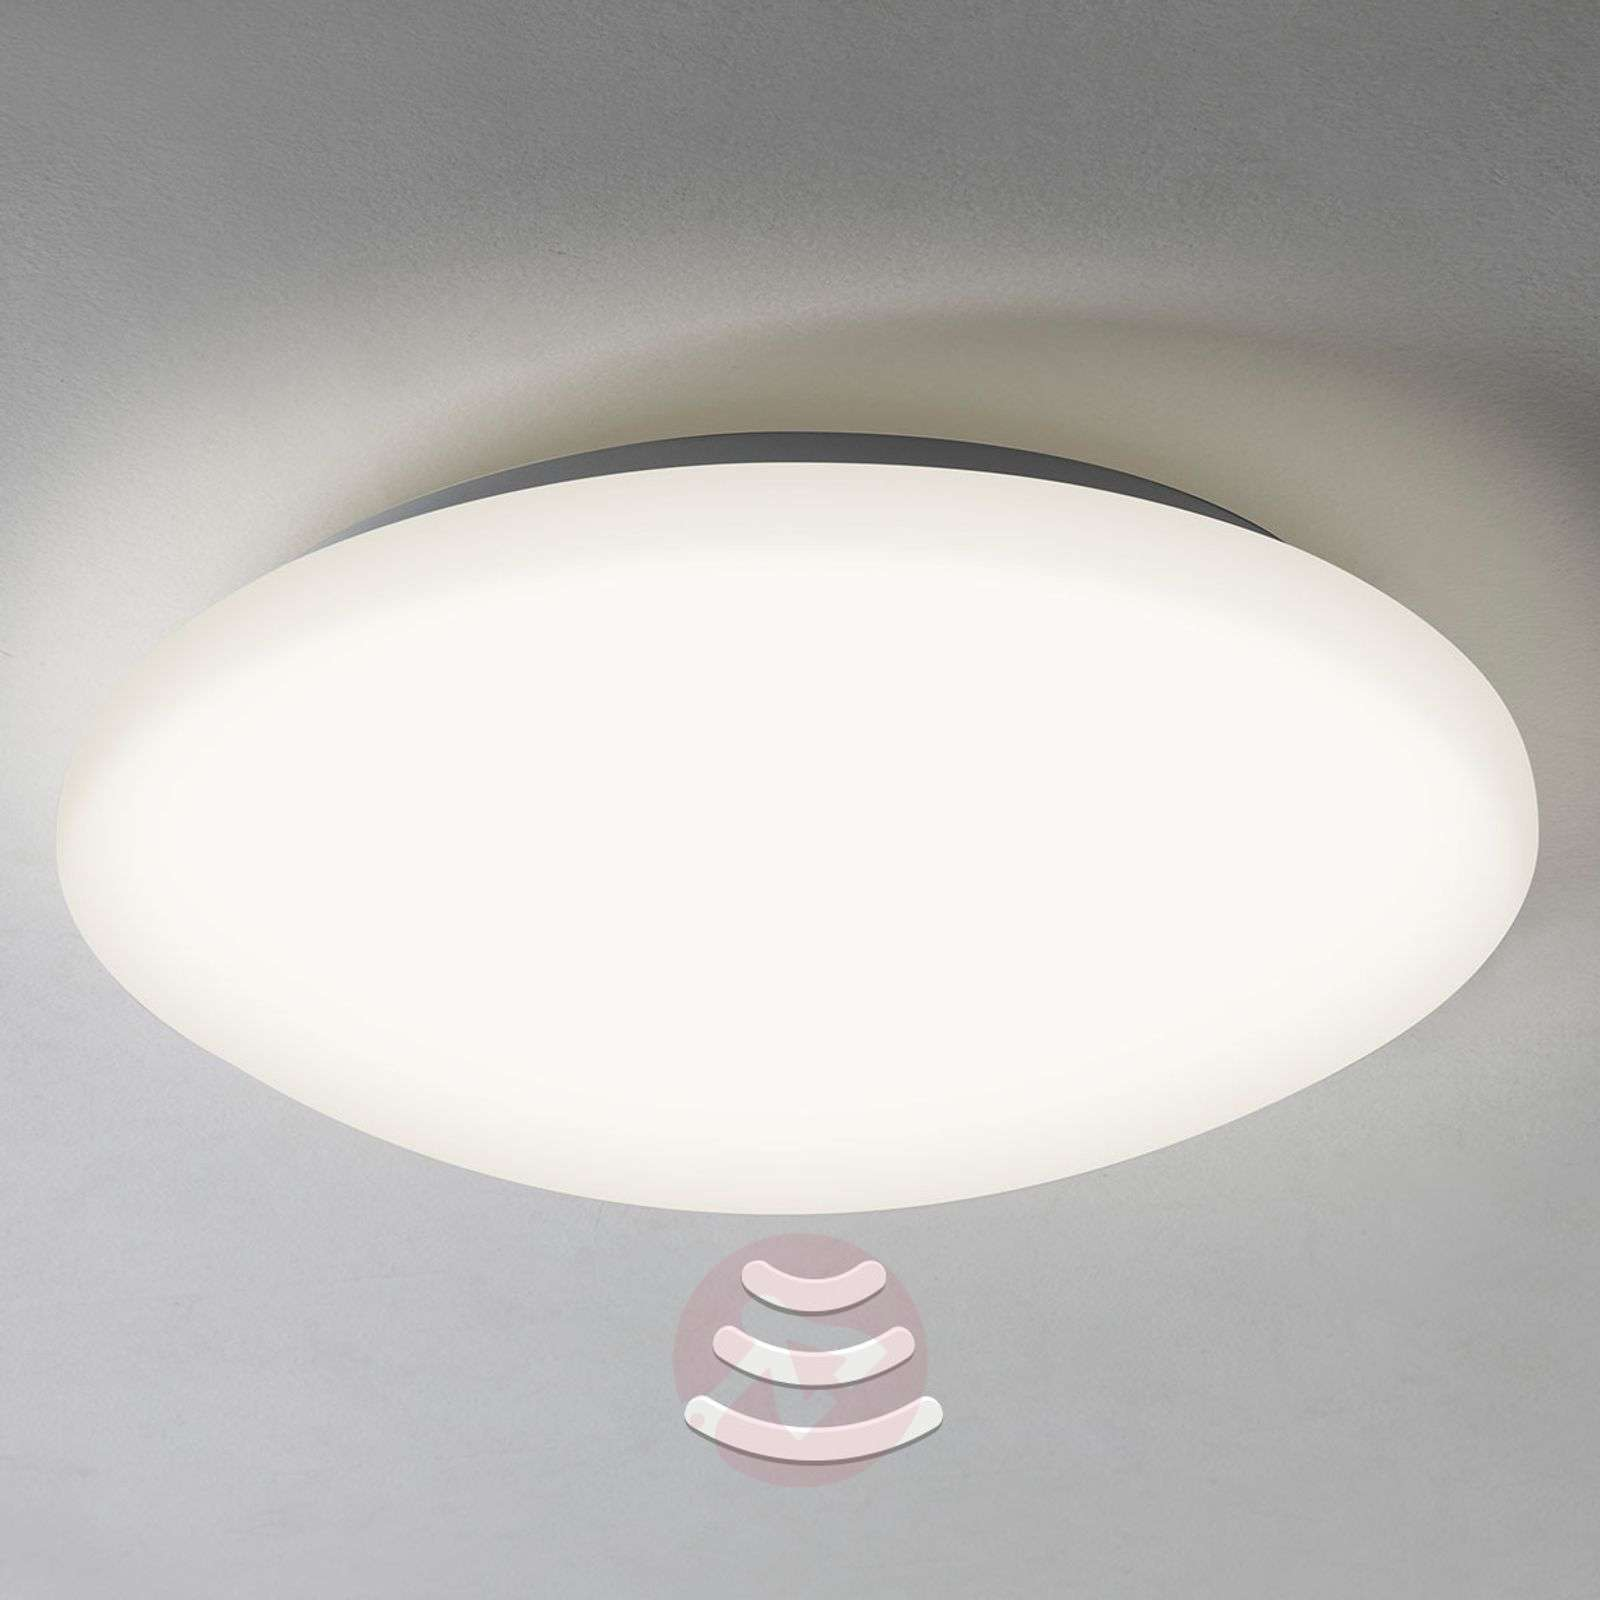 Plafoniere Con Sensore Di Movimento : Acquista massa plafoniera led con sensore ip44 lampade.it